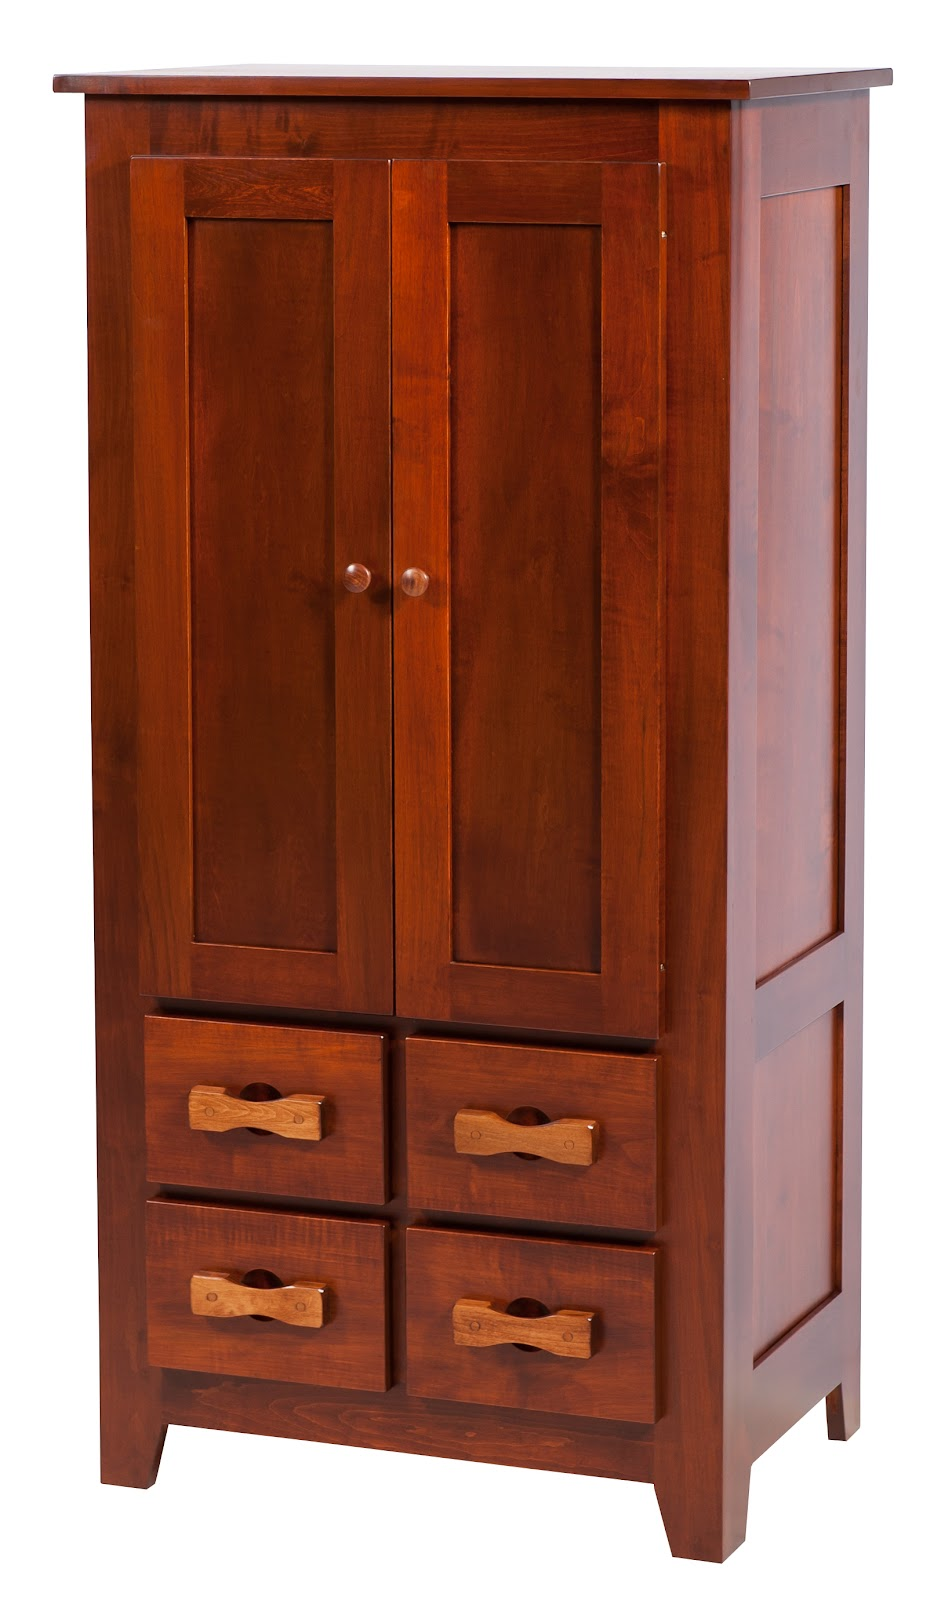 amish built sofa tables dylan harvey norman shaker armoire dressers | solid wood dresser in the ...